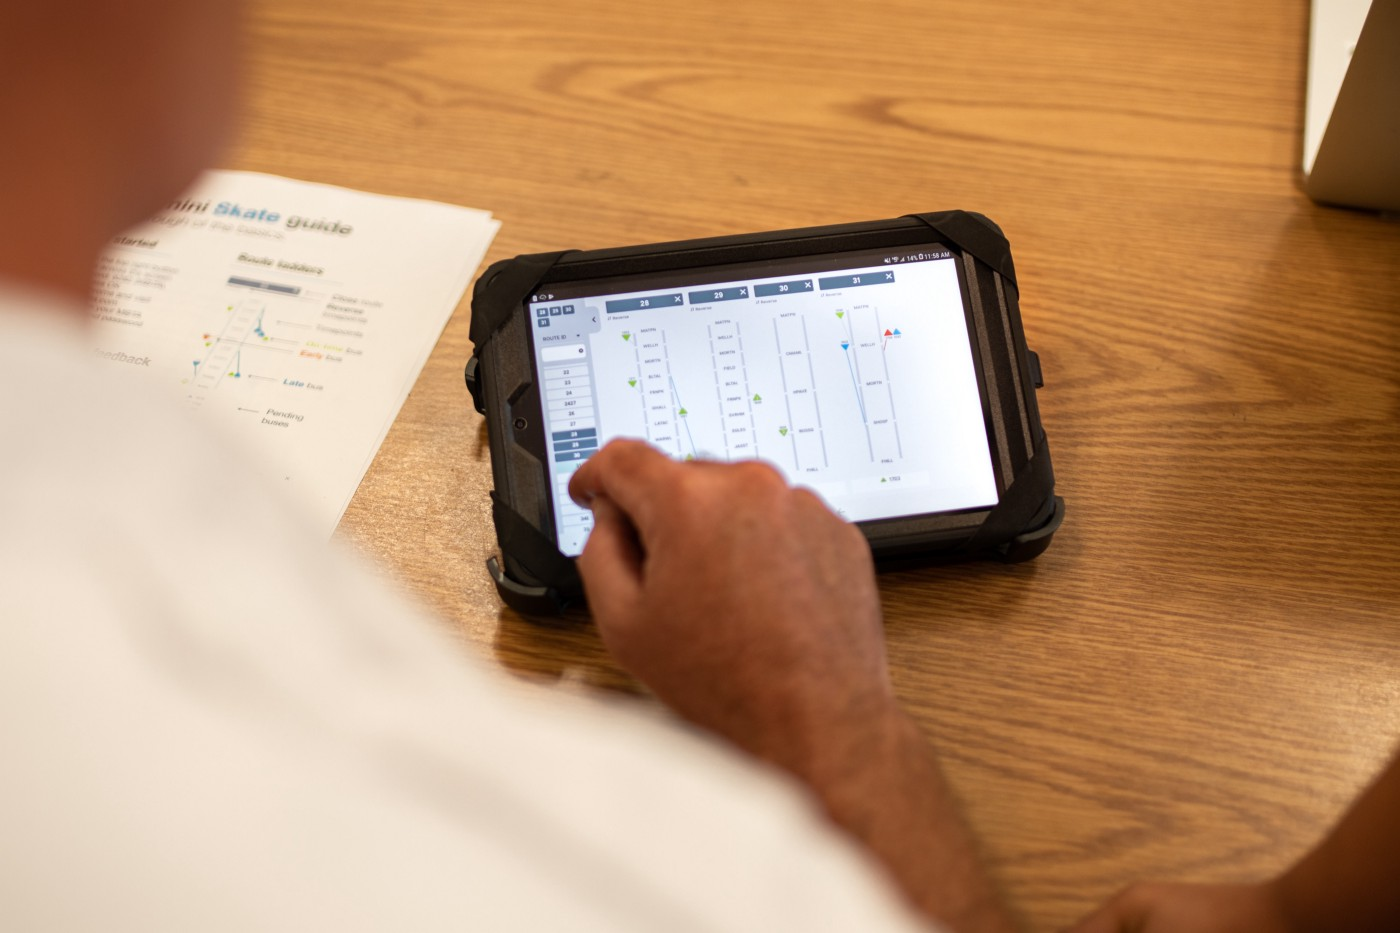 A person taps on a tablet running the MBTA Skate application